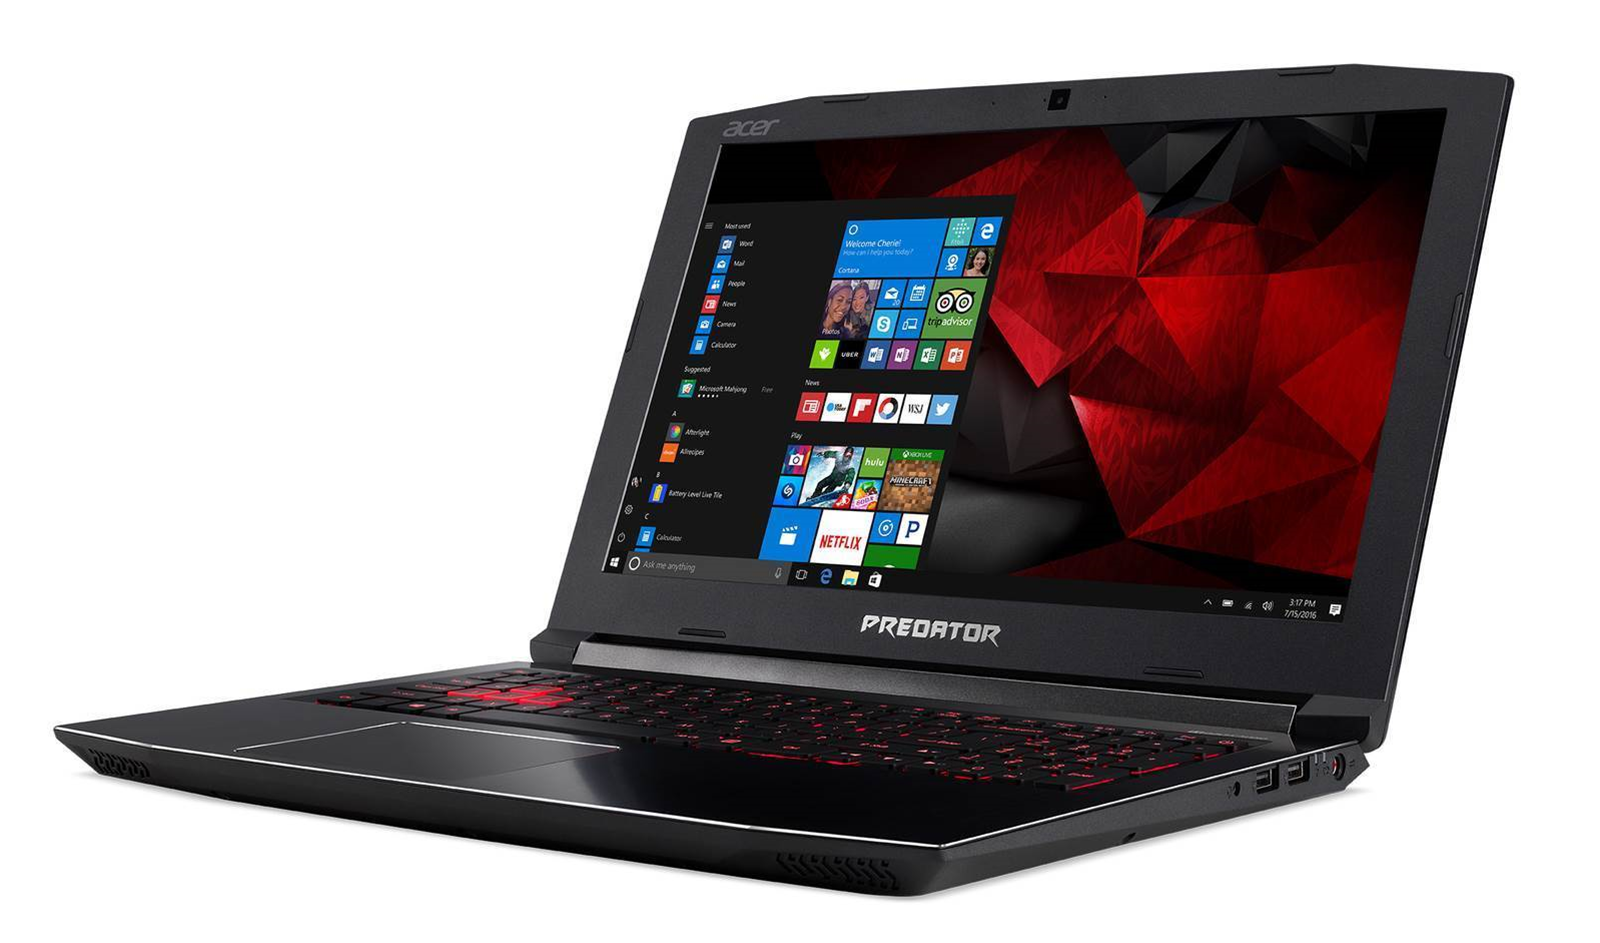 Acer's Predator Helios 300 laptop launches in Australia